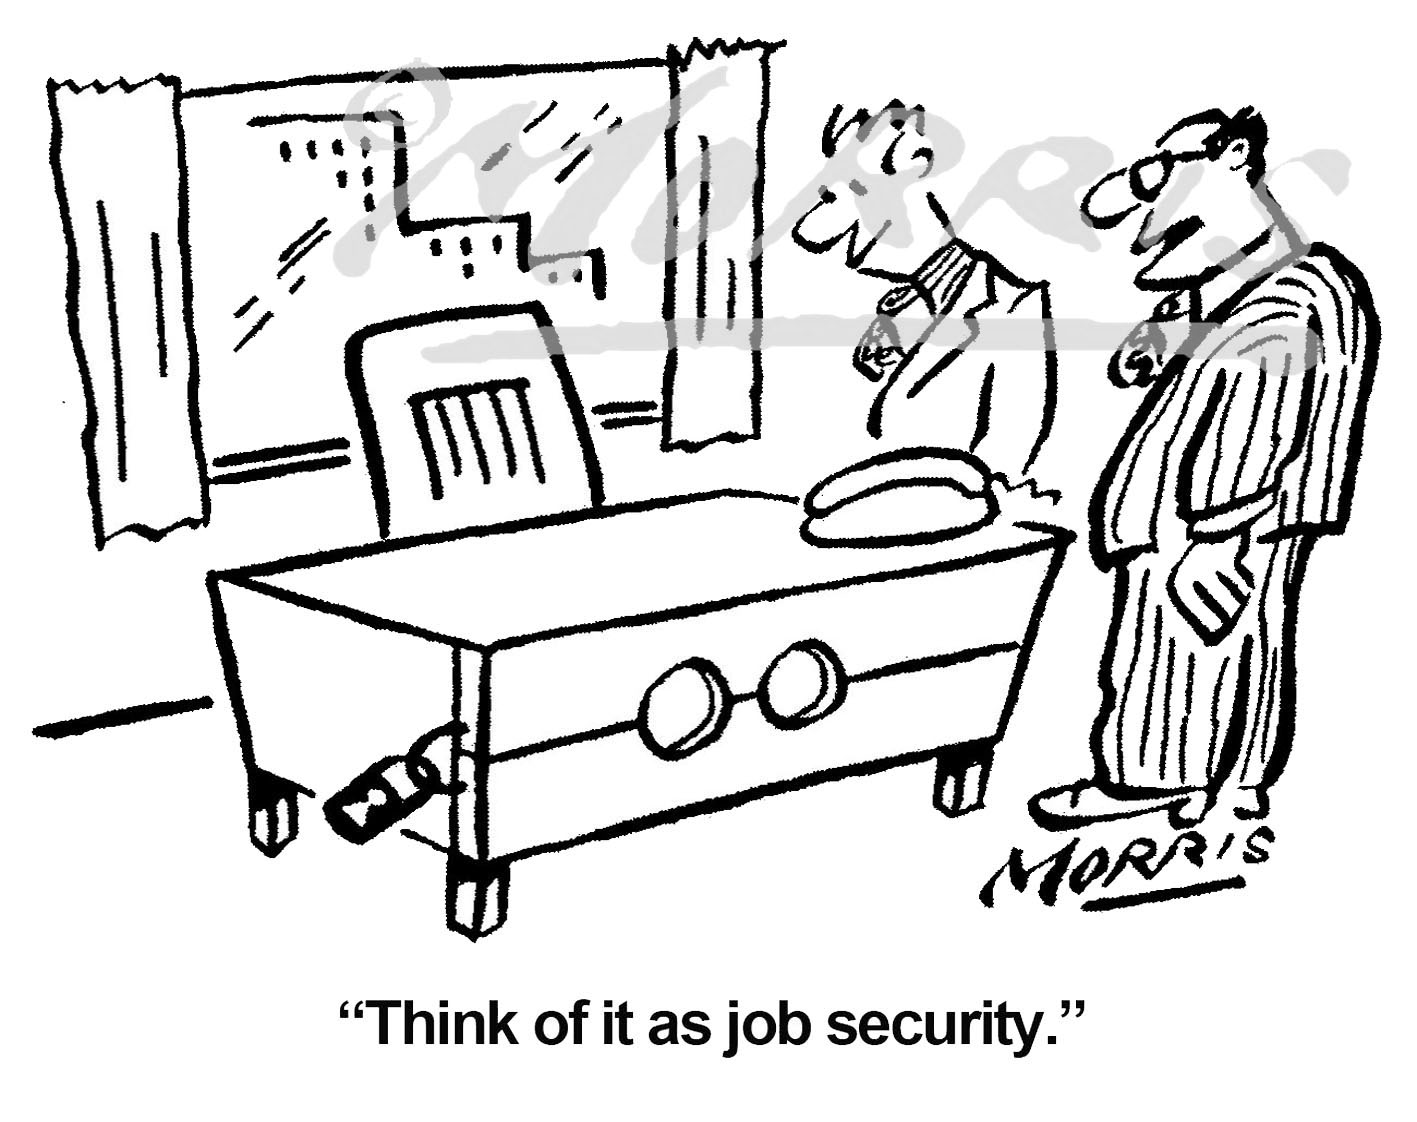 Job security cartoon, office cartoon – Ref: 7381bw